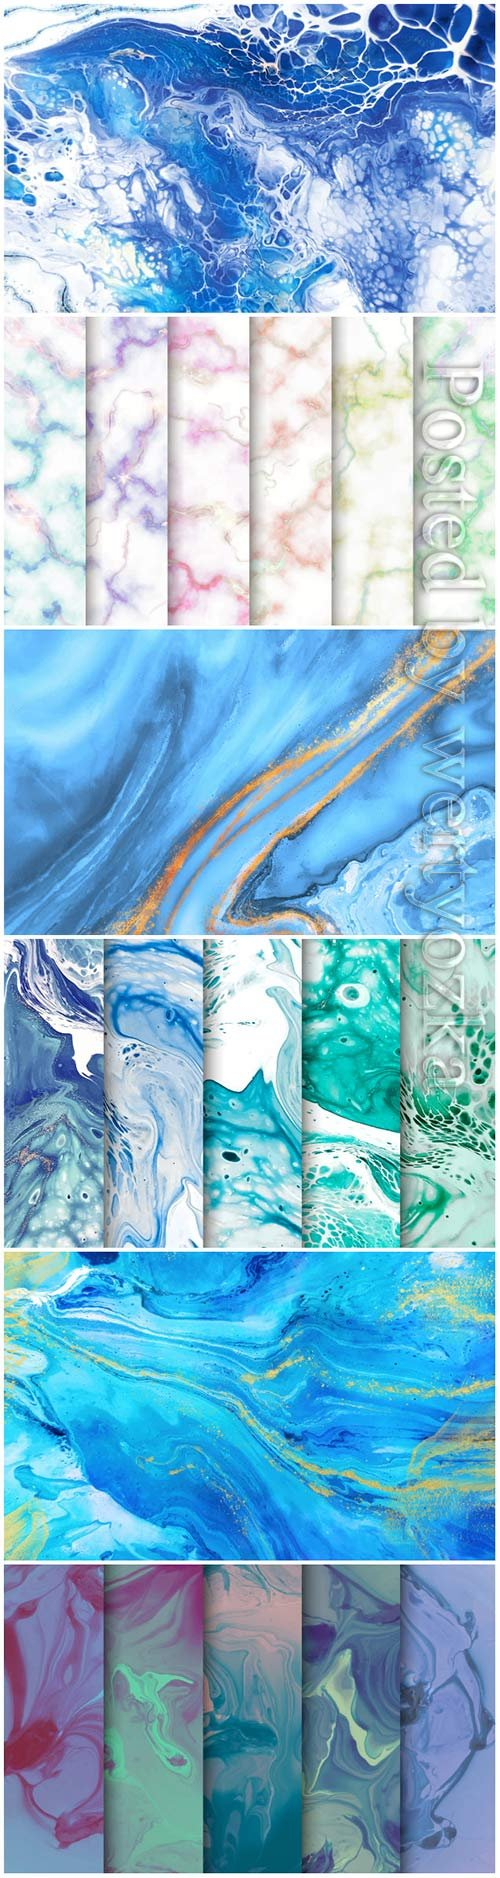 Marble paint texture vector background